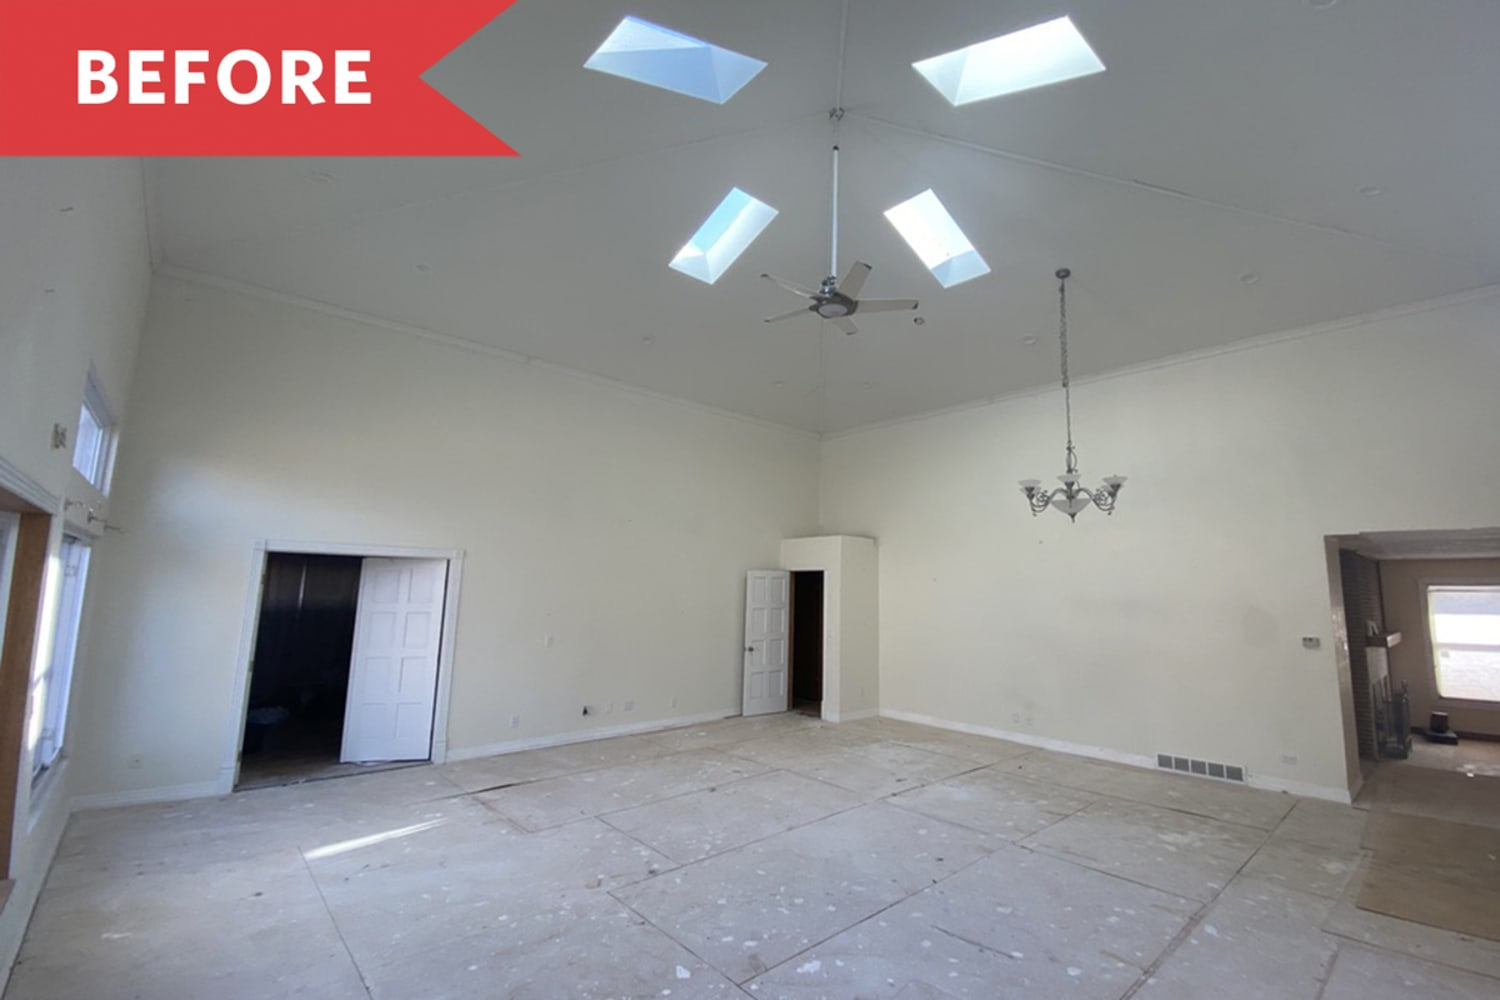 See How a Home Stager Turned a Cavernous Den into a Stunning Multipurpose Space